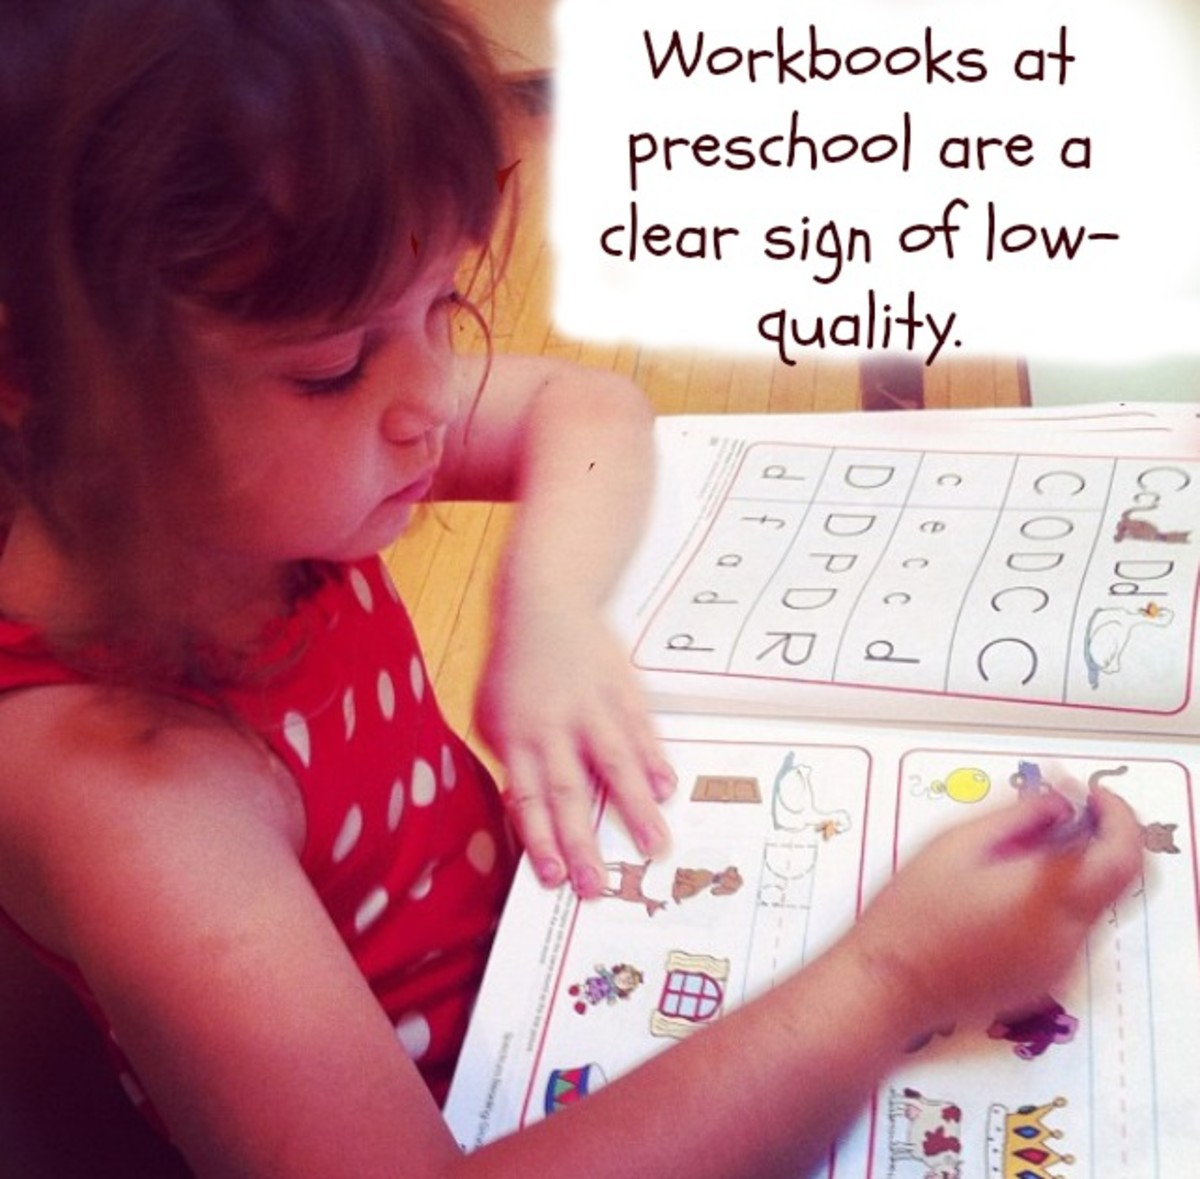 Preschoolers shouldn't be doing paper-pencil work. They should be doing activities that promote fine motor skills and dexterity: molding clay, stringing beads, and doing puzzles.